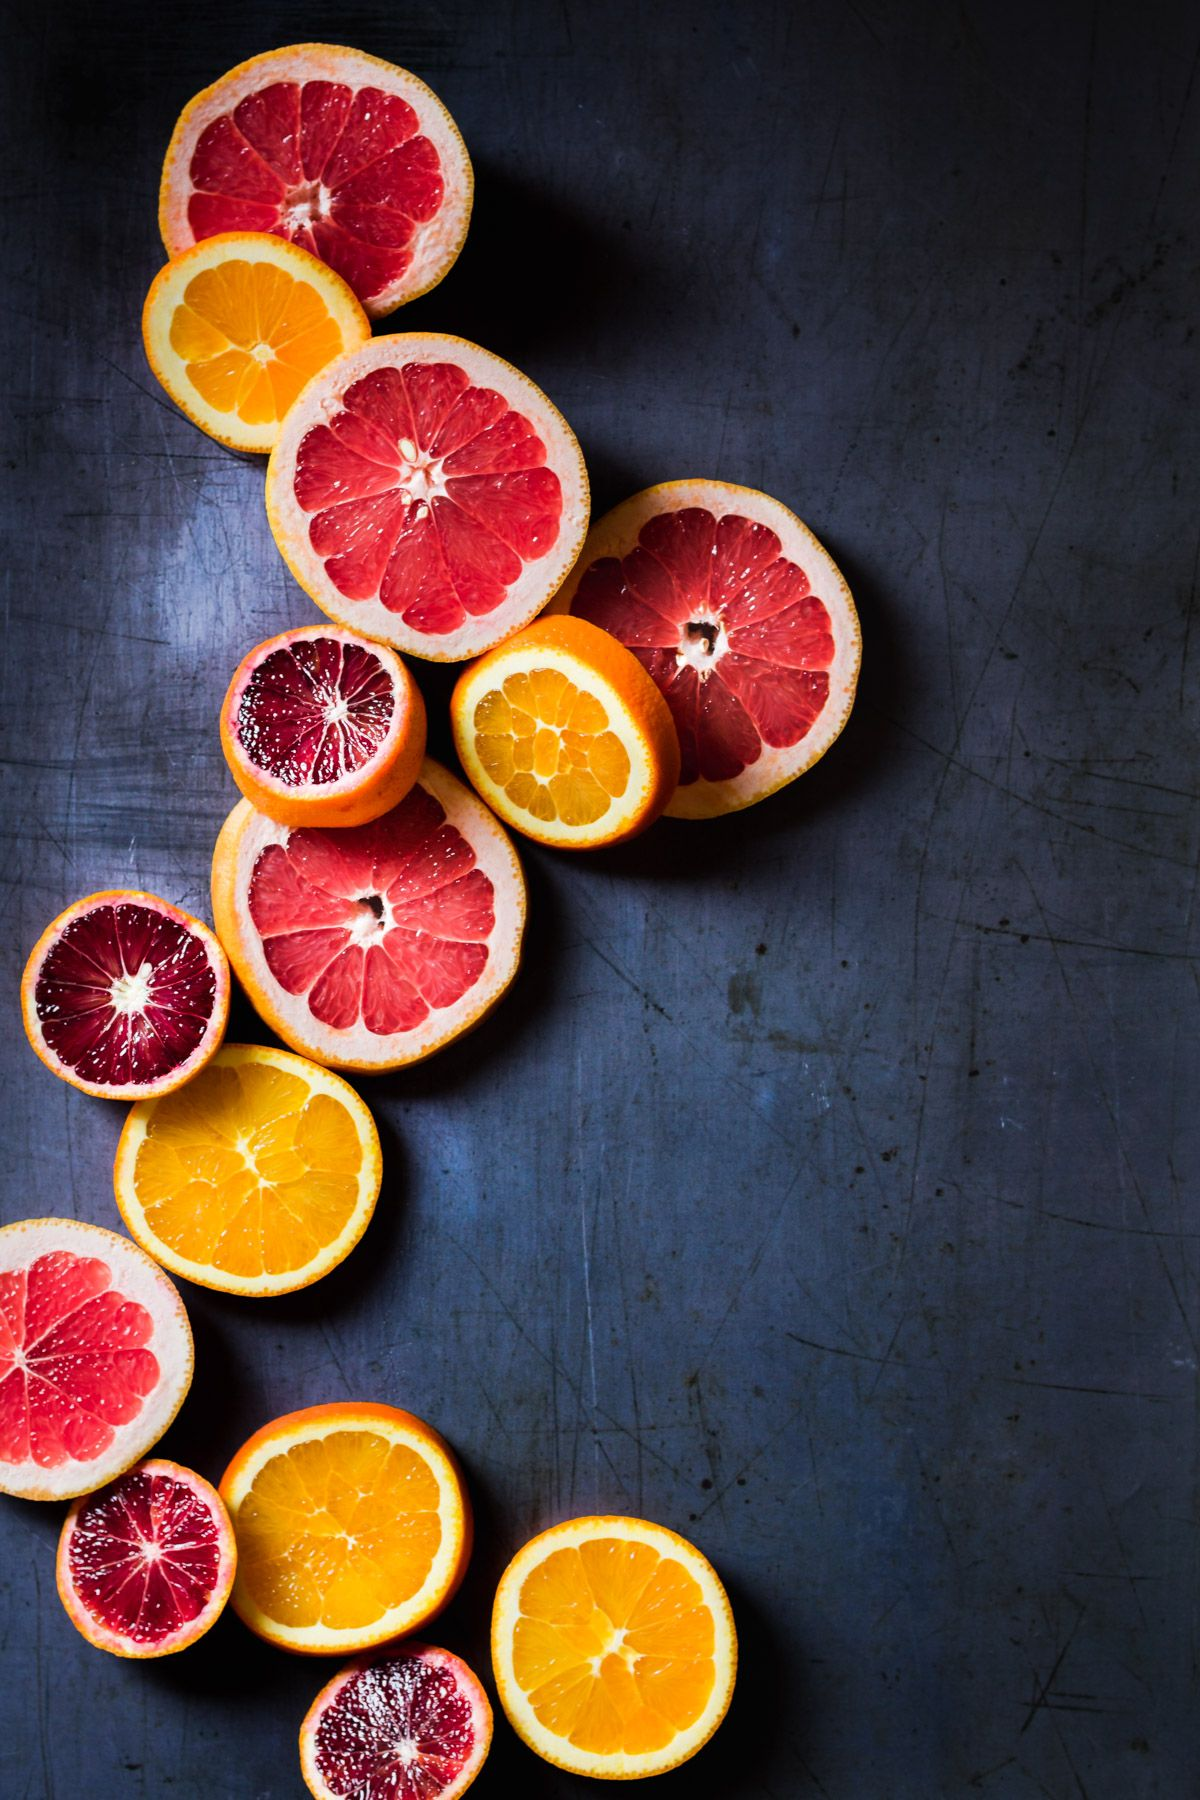 Emily Miller, Tucson, Food Photographer, Blood Oranges